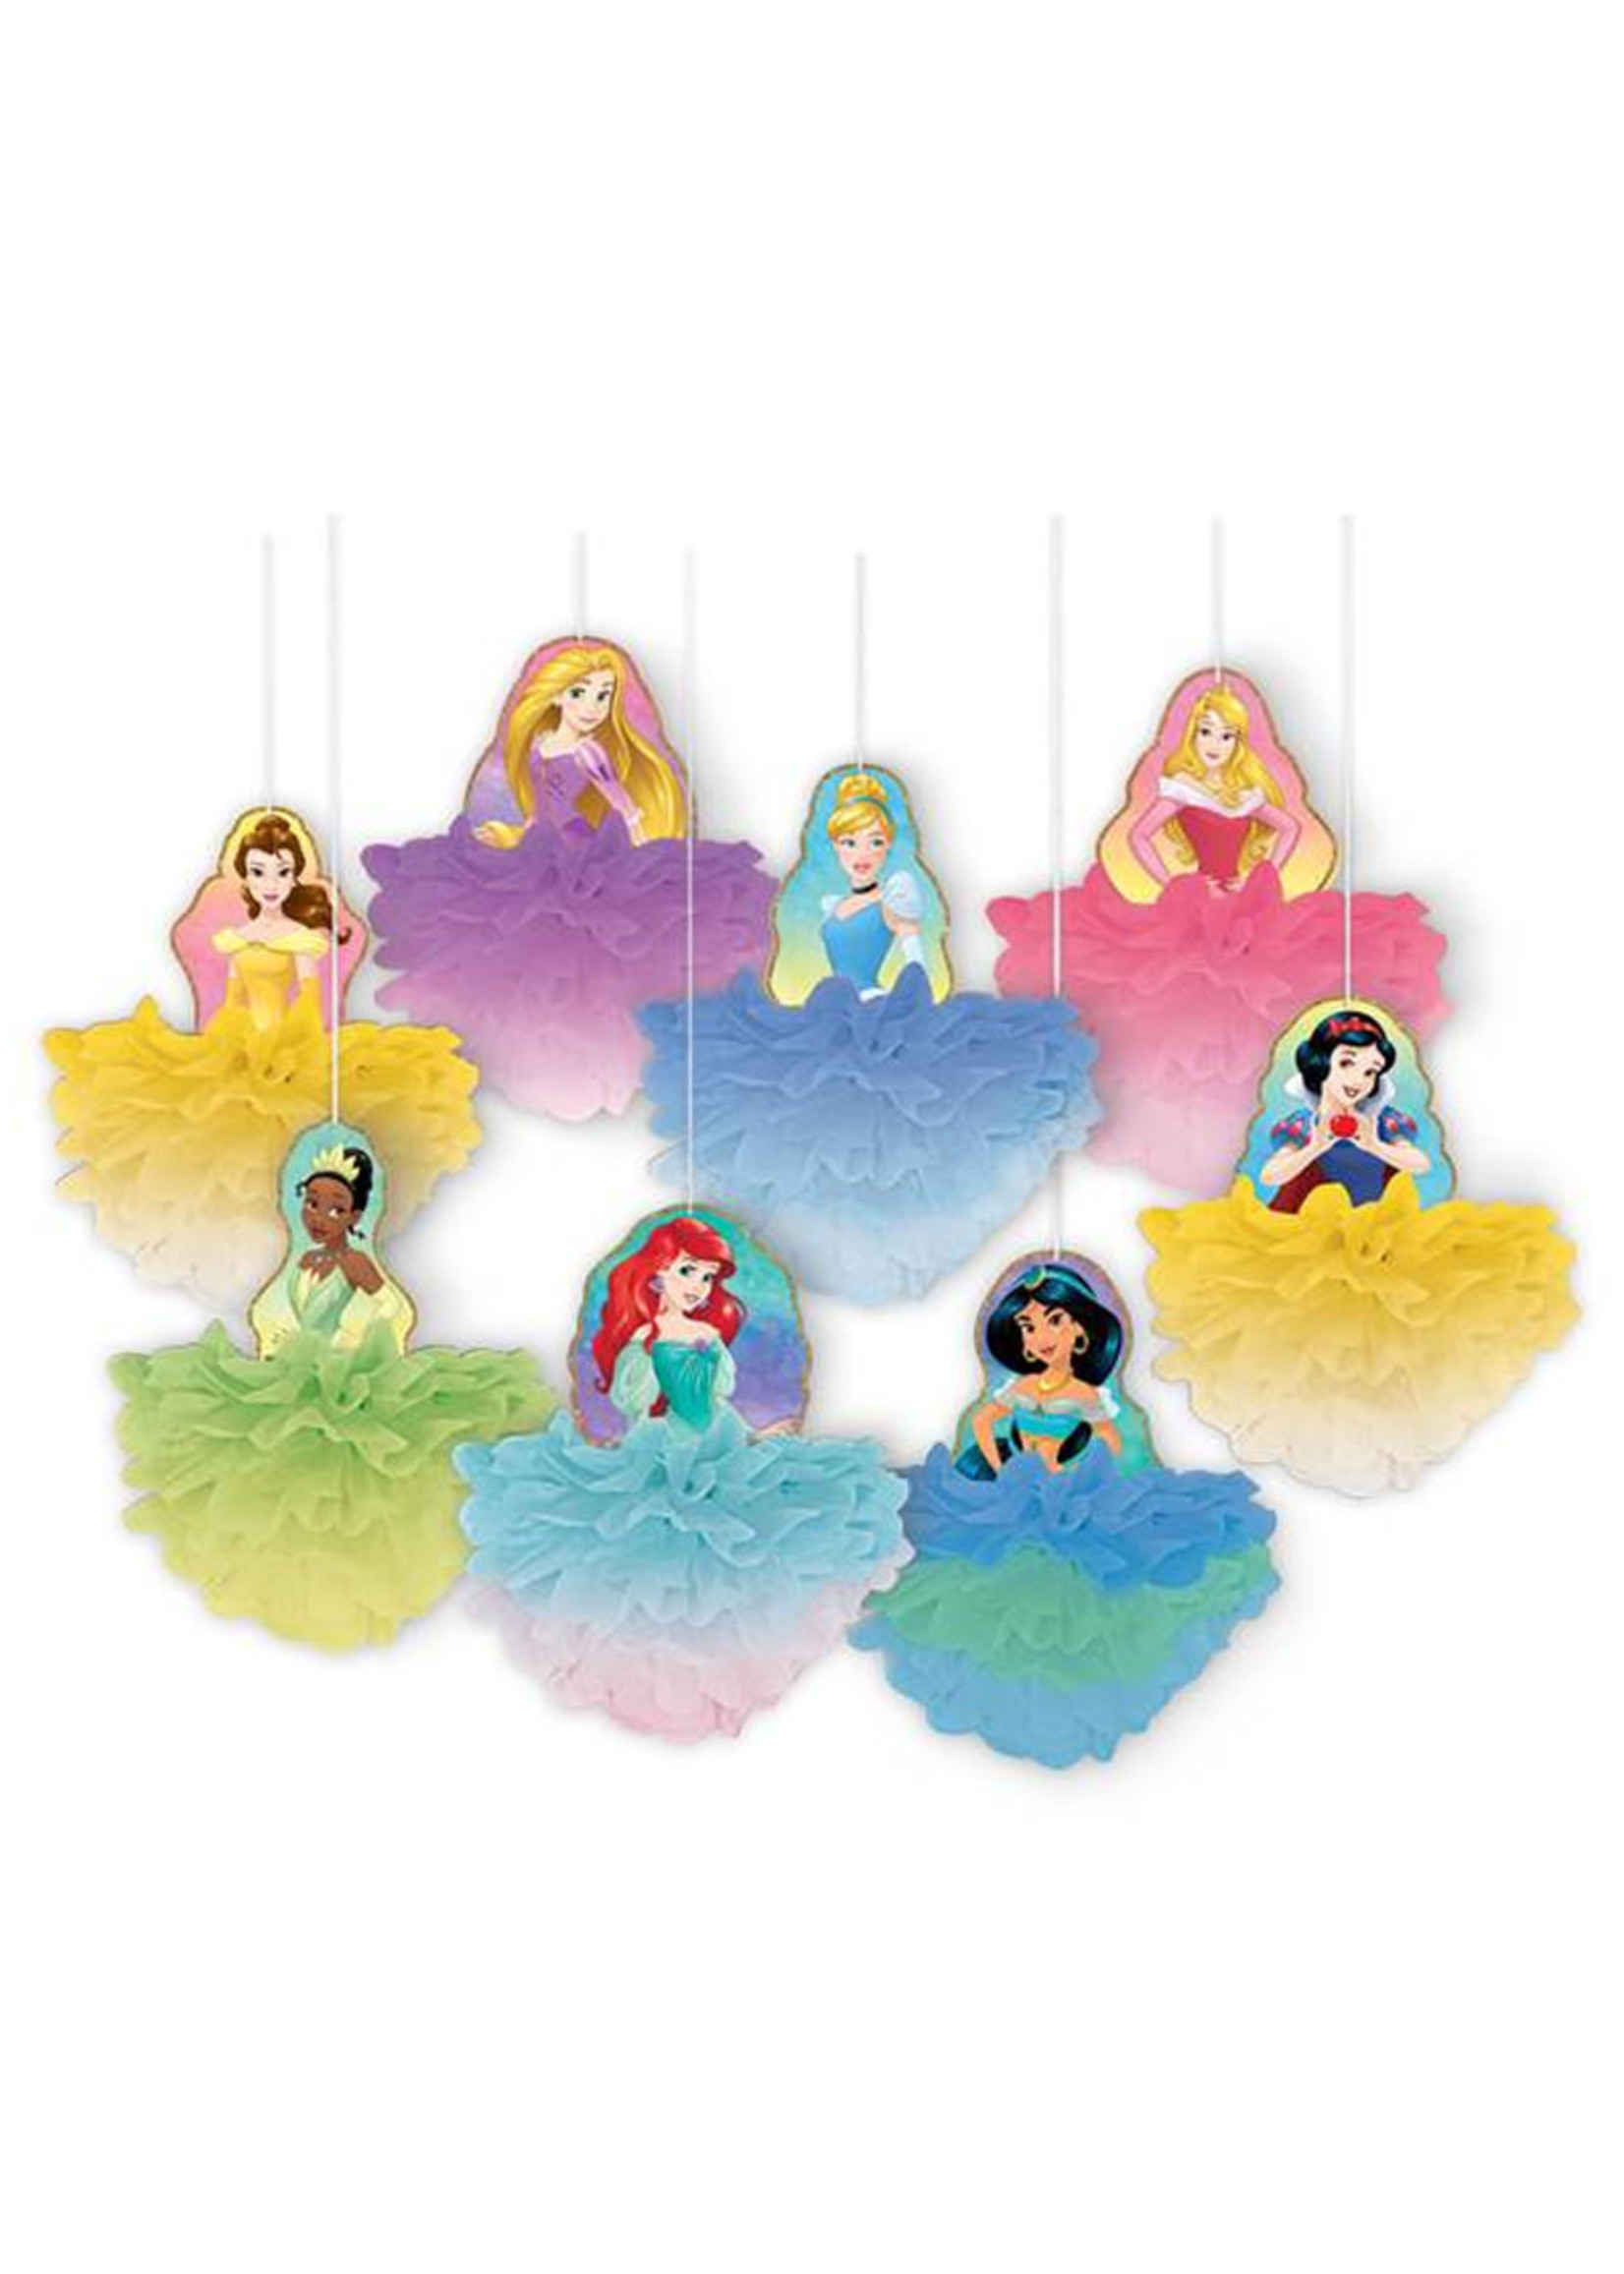 Disney Princess Once Upon A Time Deluxe Fluffy Decorations